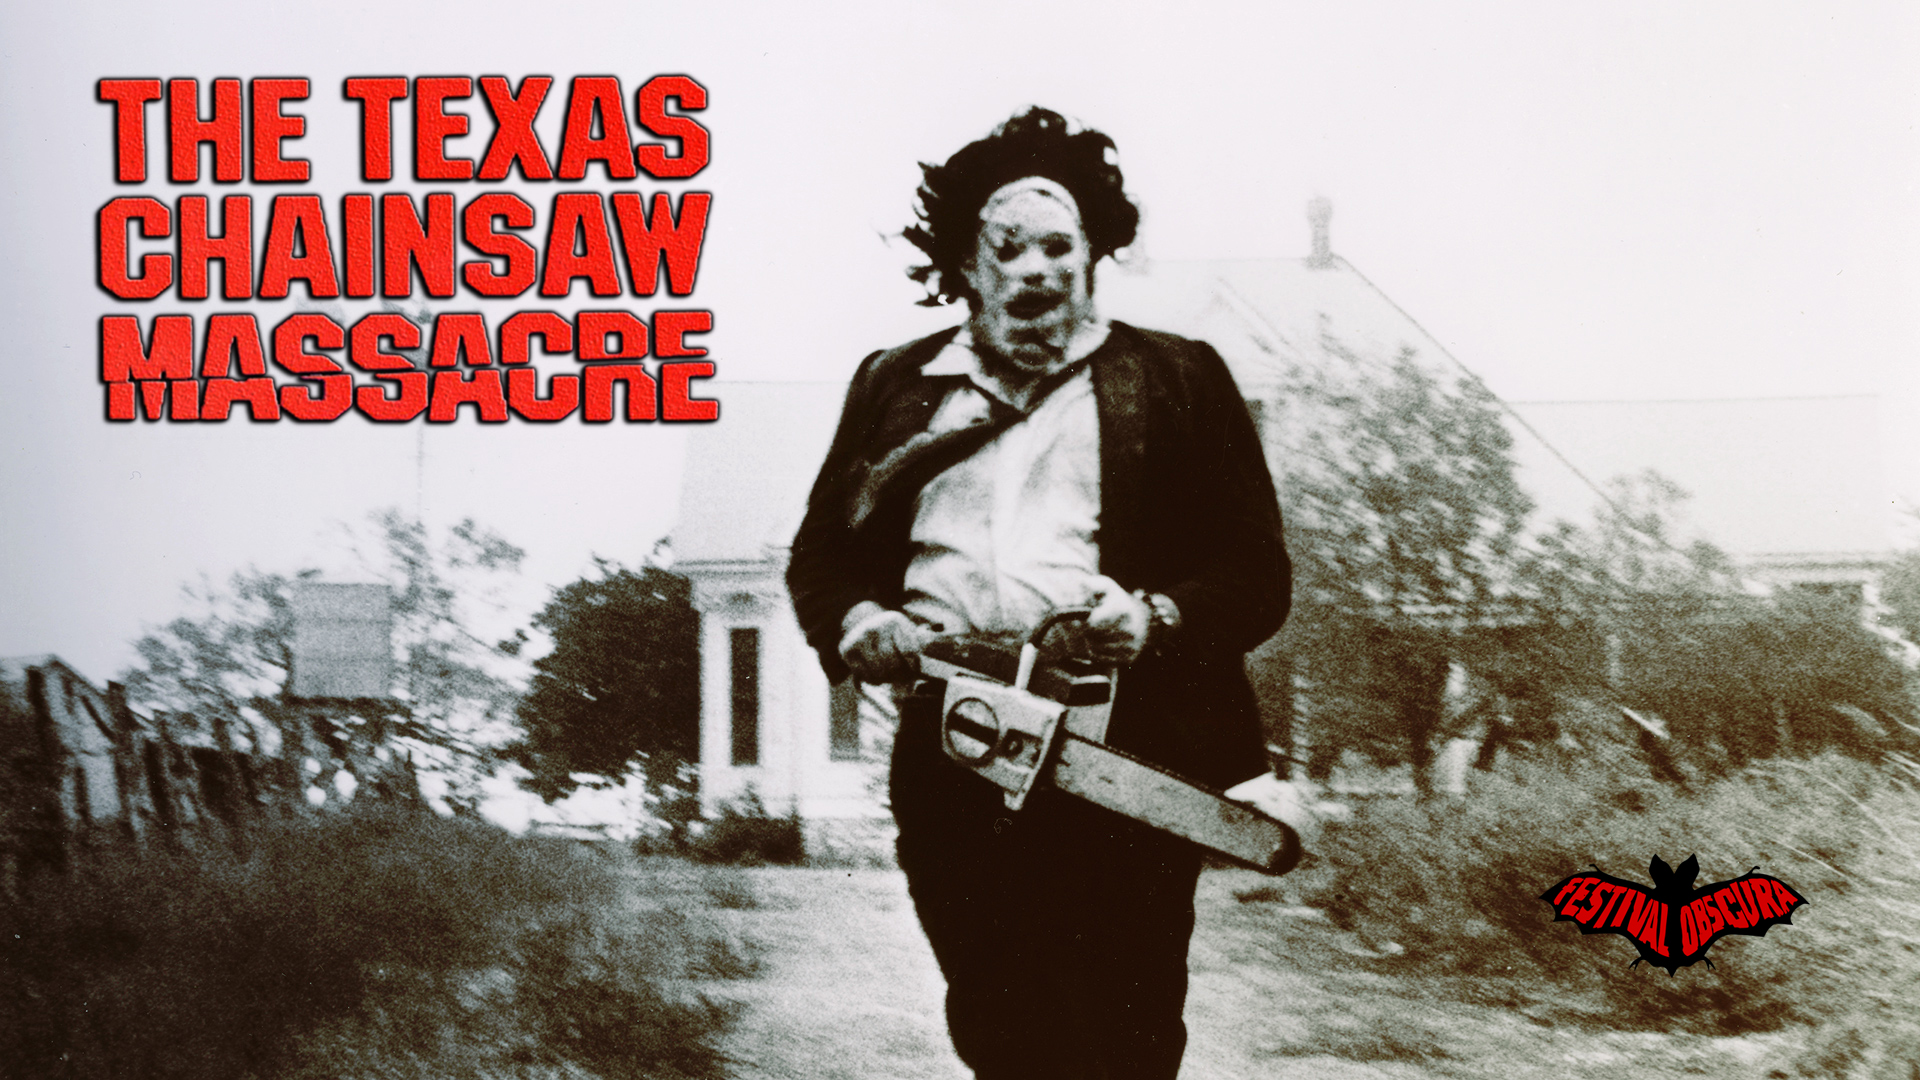 THE TEXAS CHAINSAW MASSACRE @ THE ART THEATRE - Thursday, October 18th, 2018